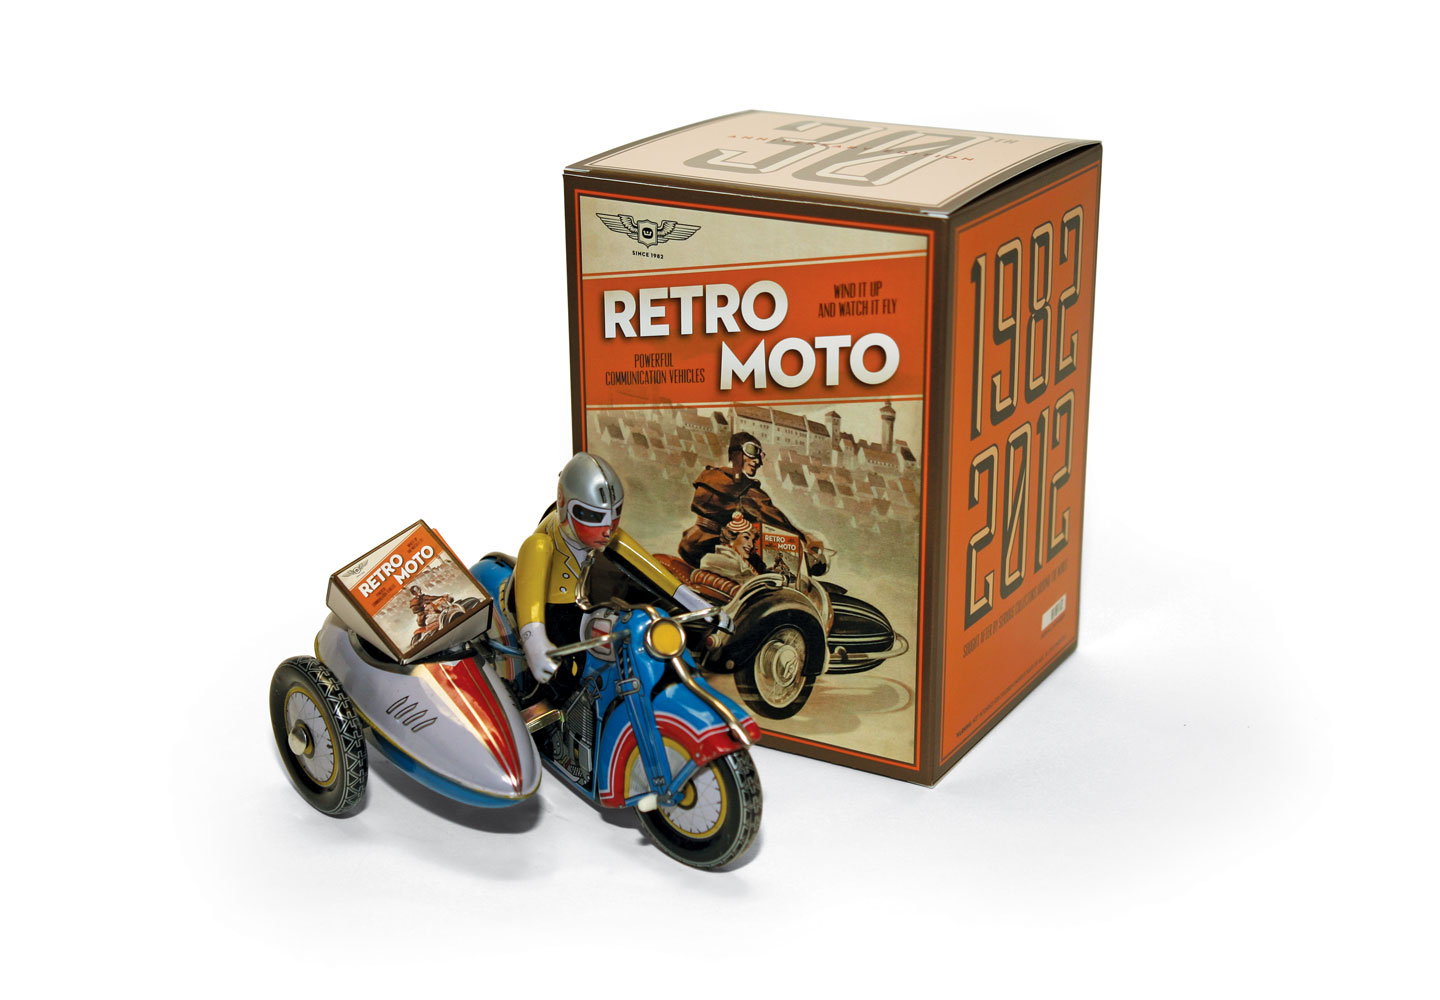 Webster Retro Moto package and tin toy